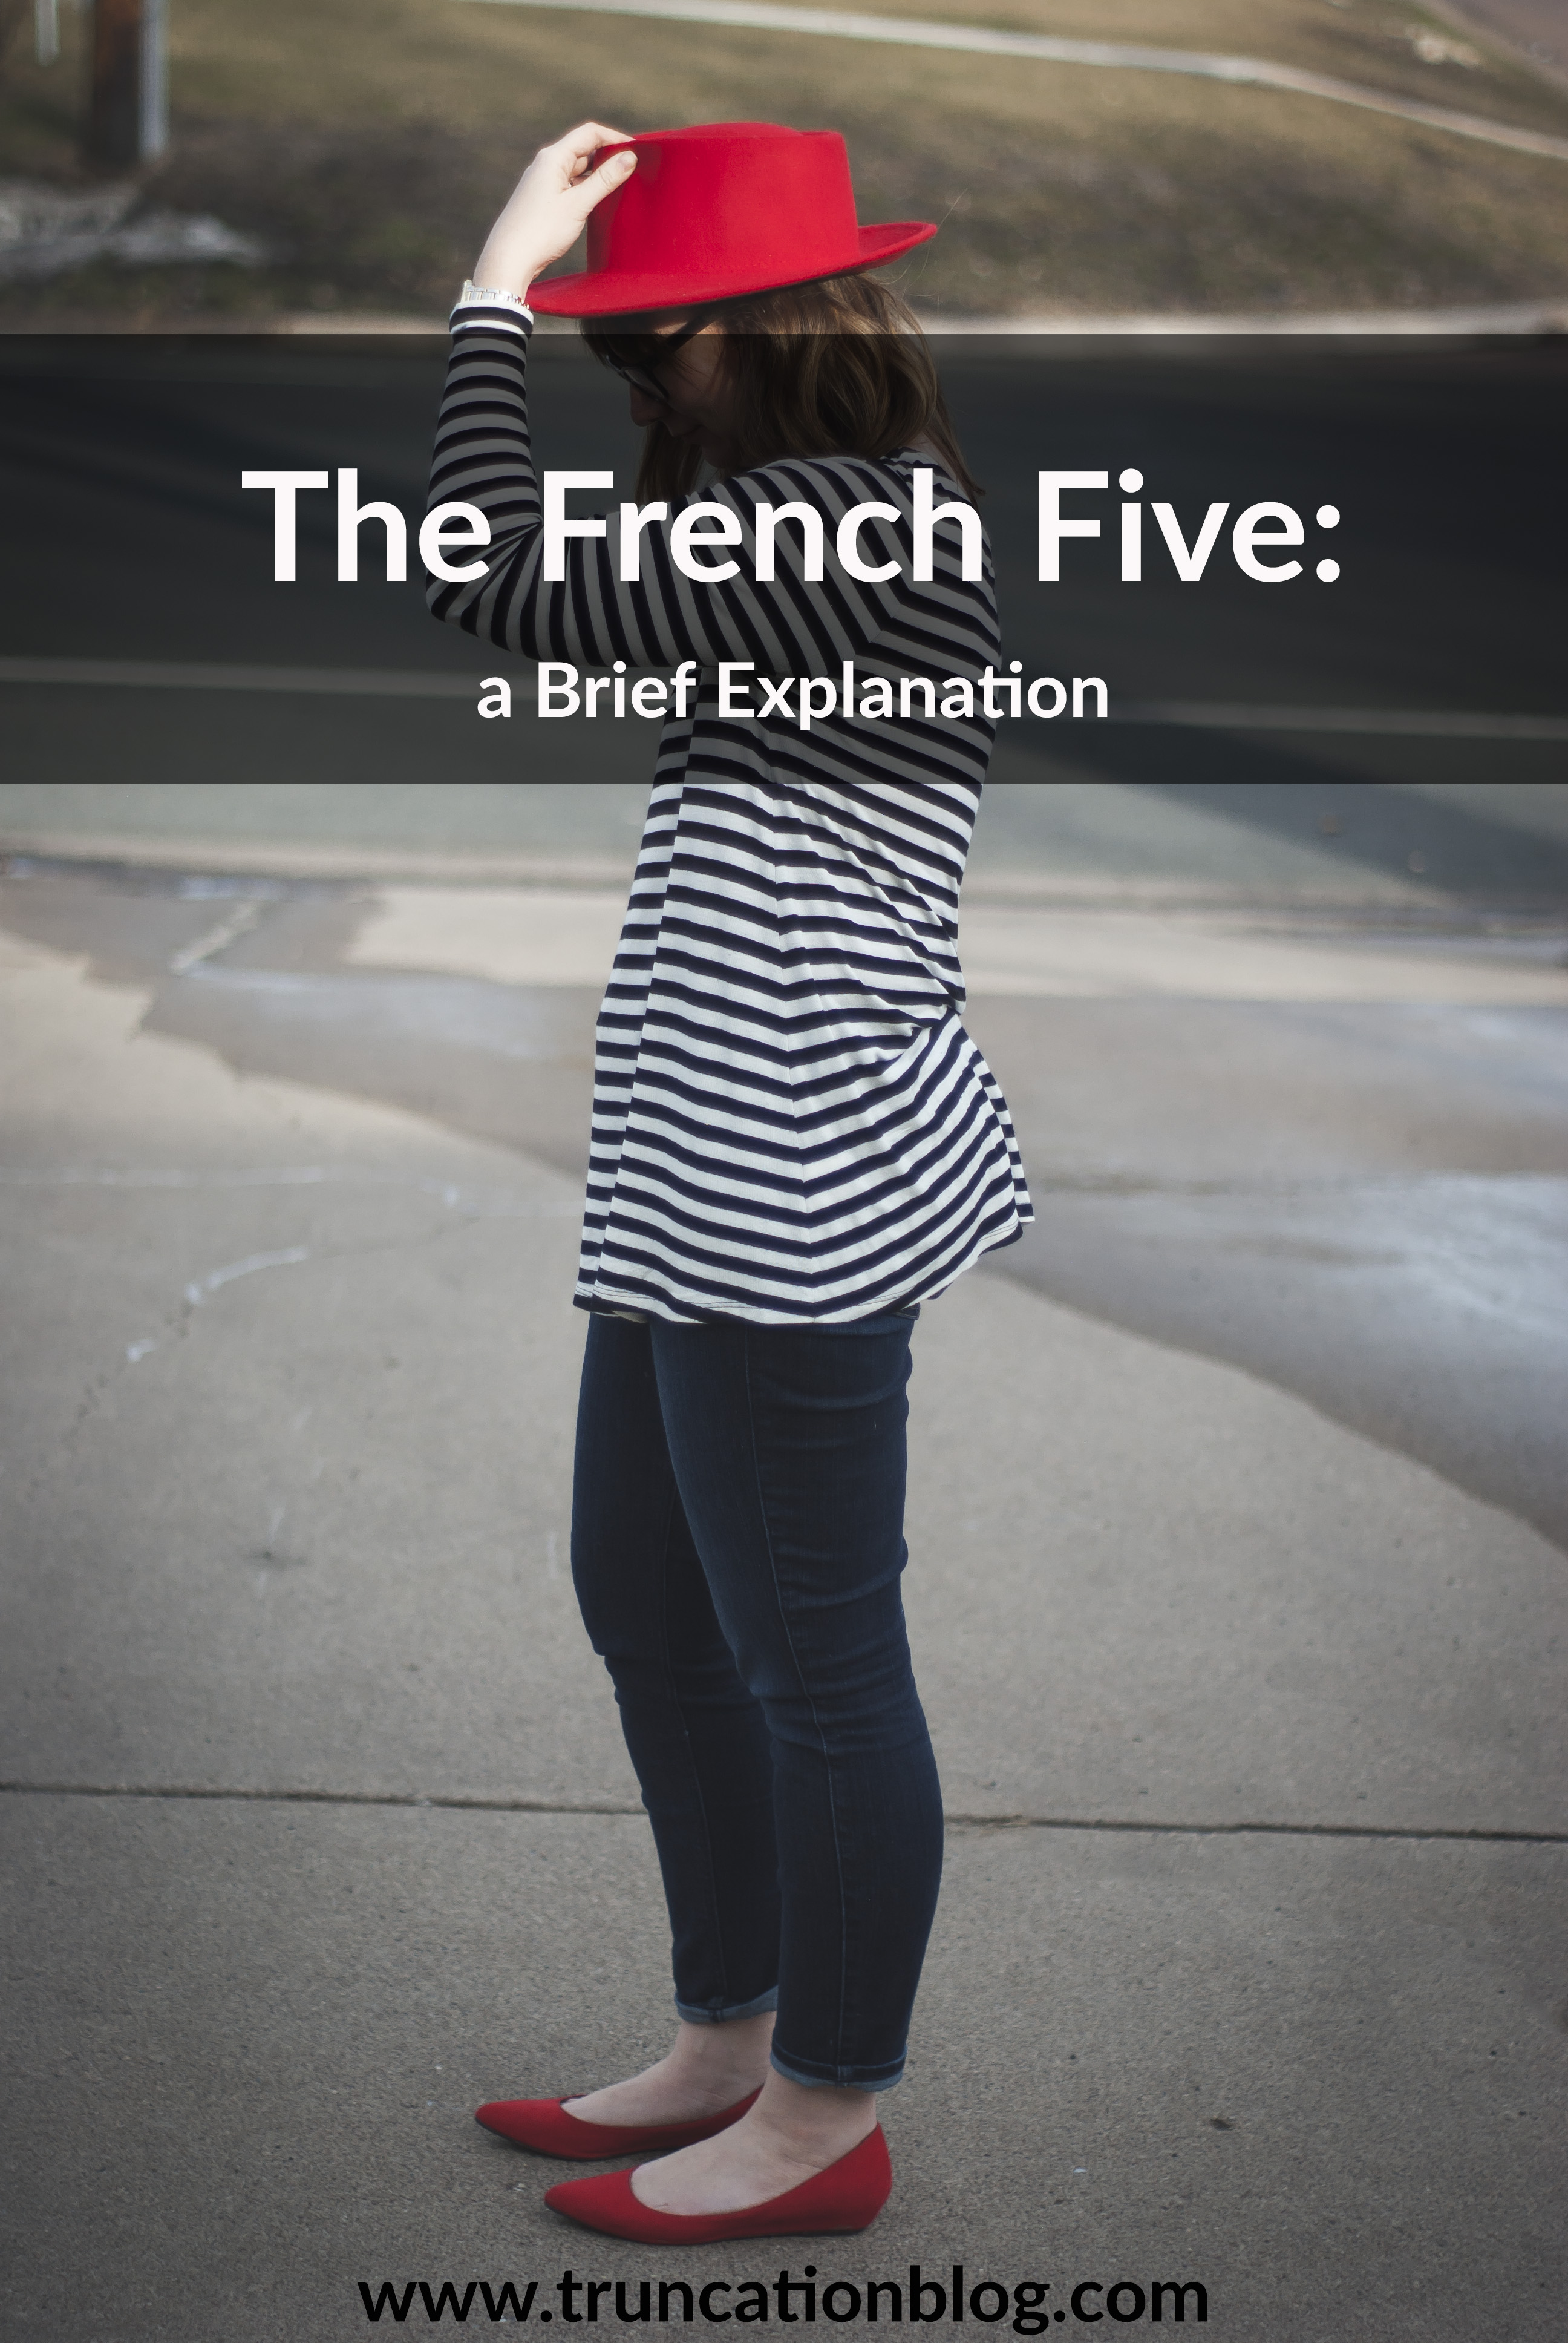 The French Five: a Brief Explanation